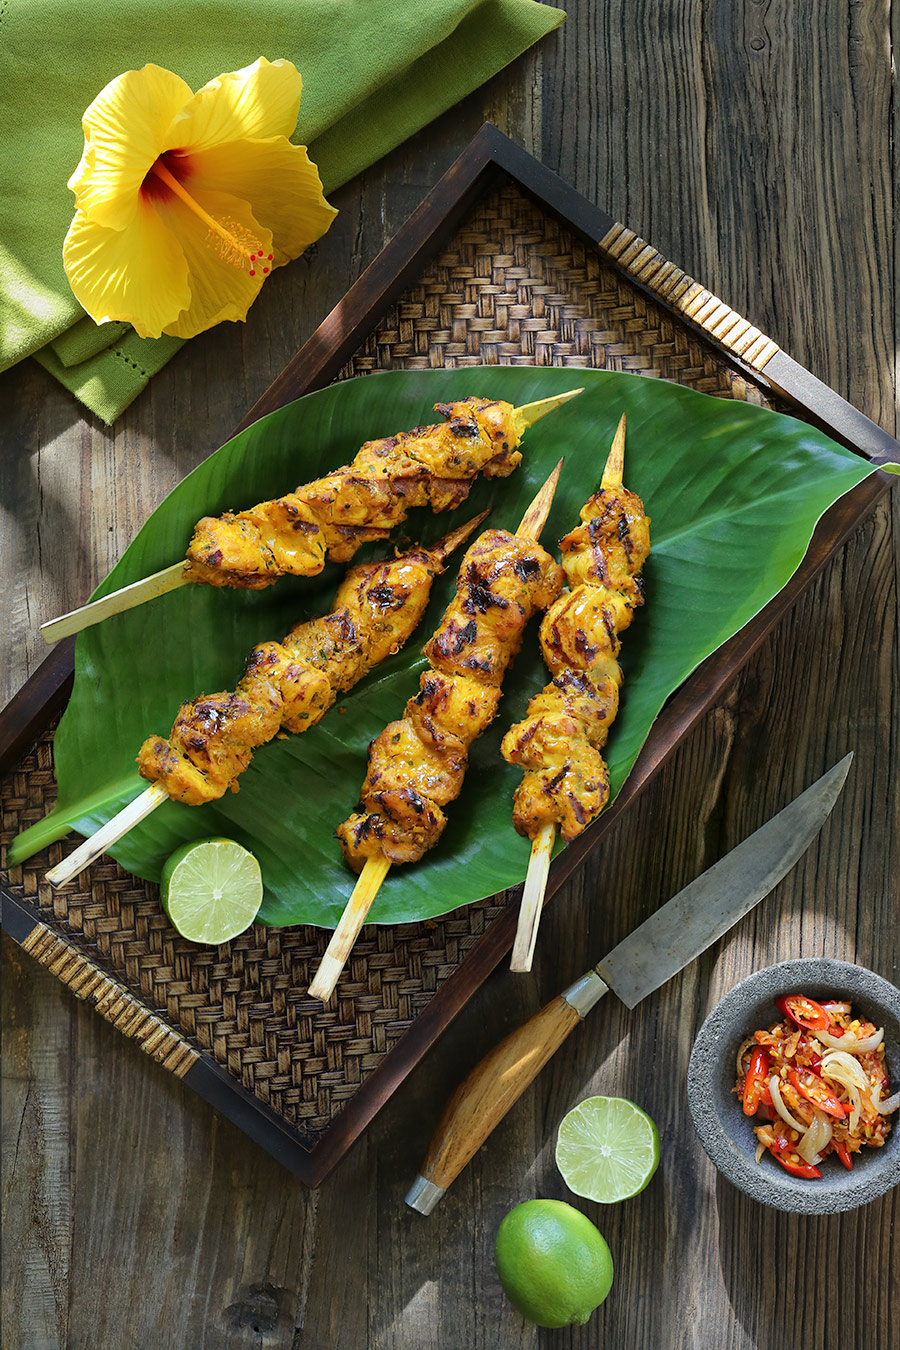 Chicken satay recipe from Bali.